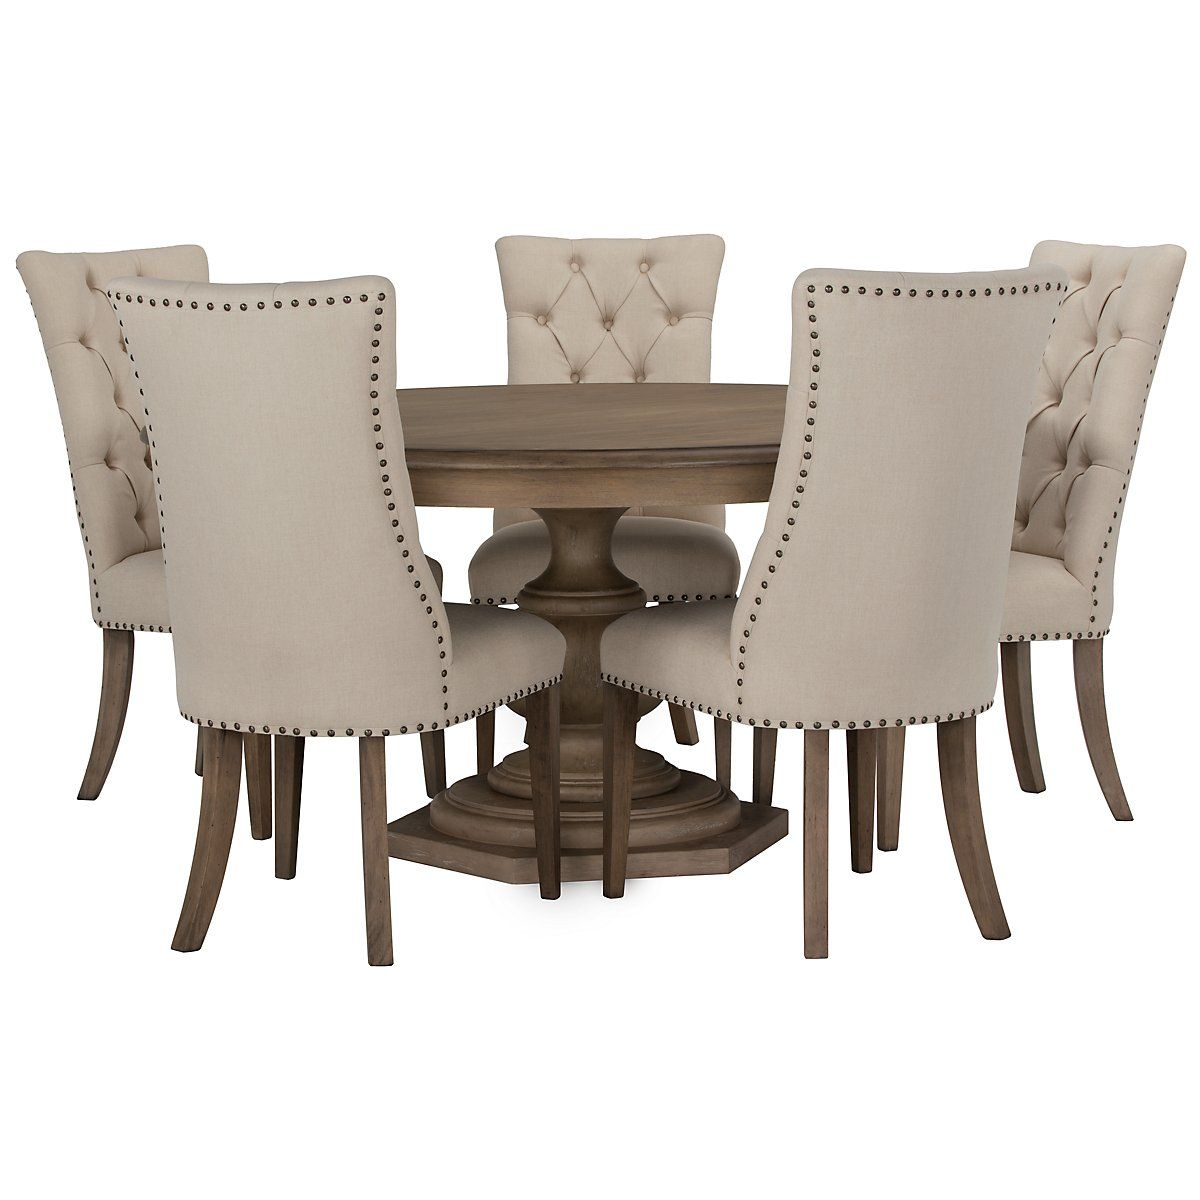 Haddie Light Tone Round Table  4 Upholstered Chairs in